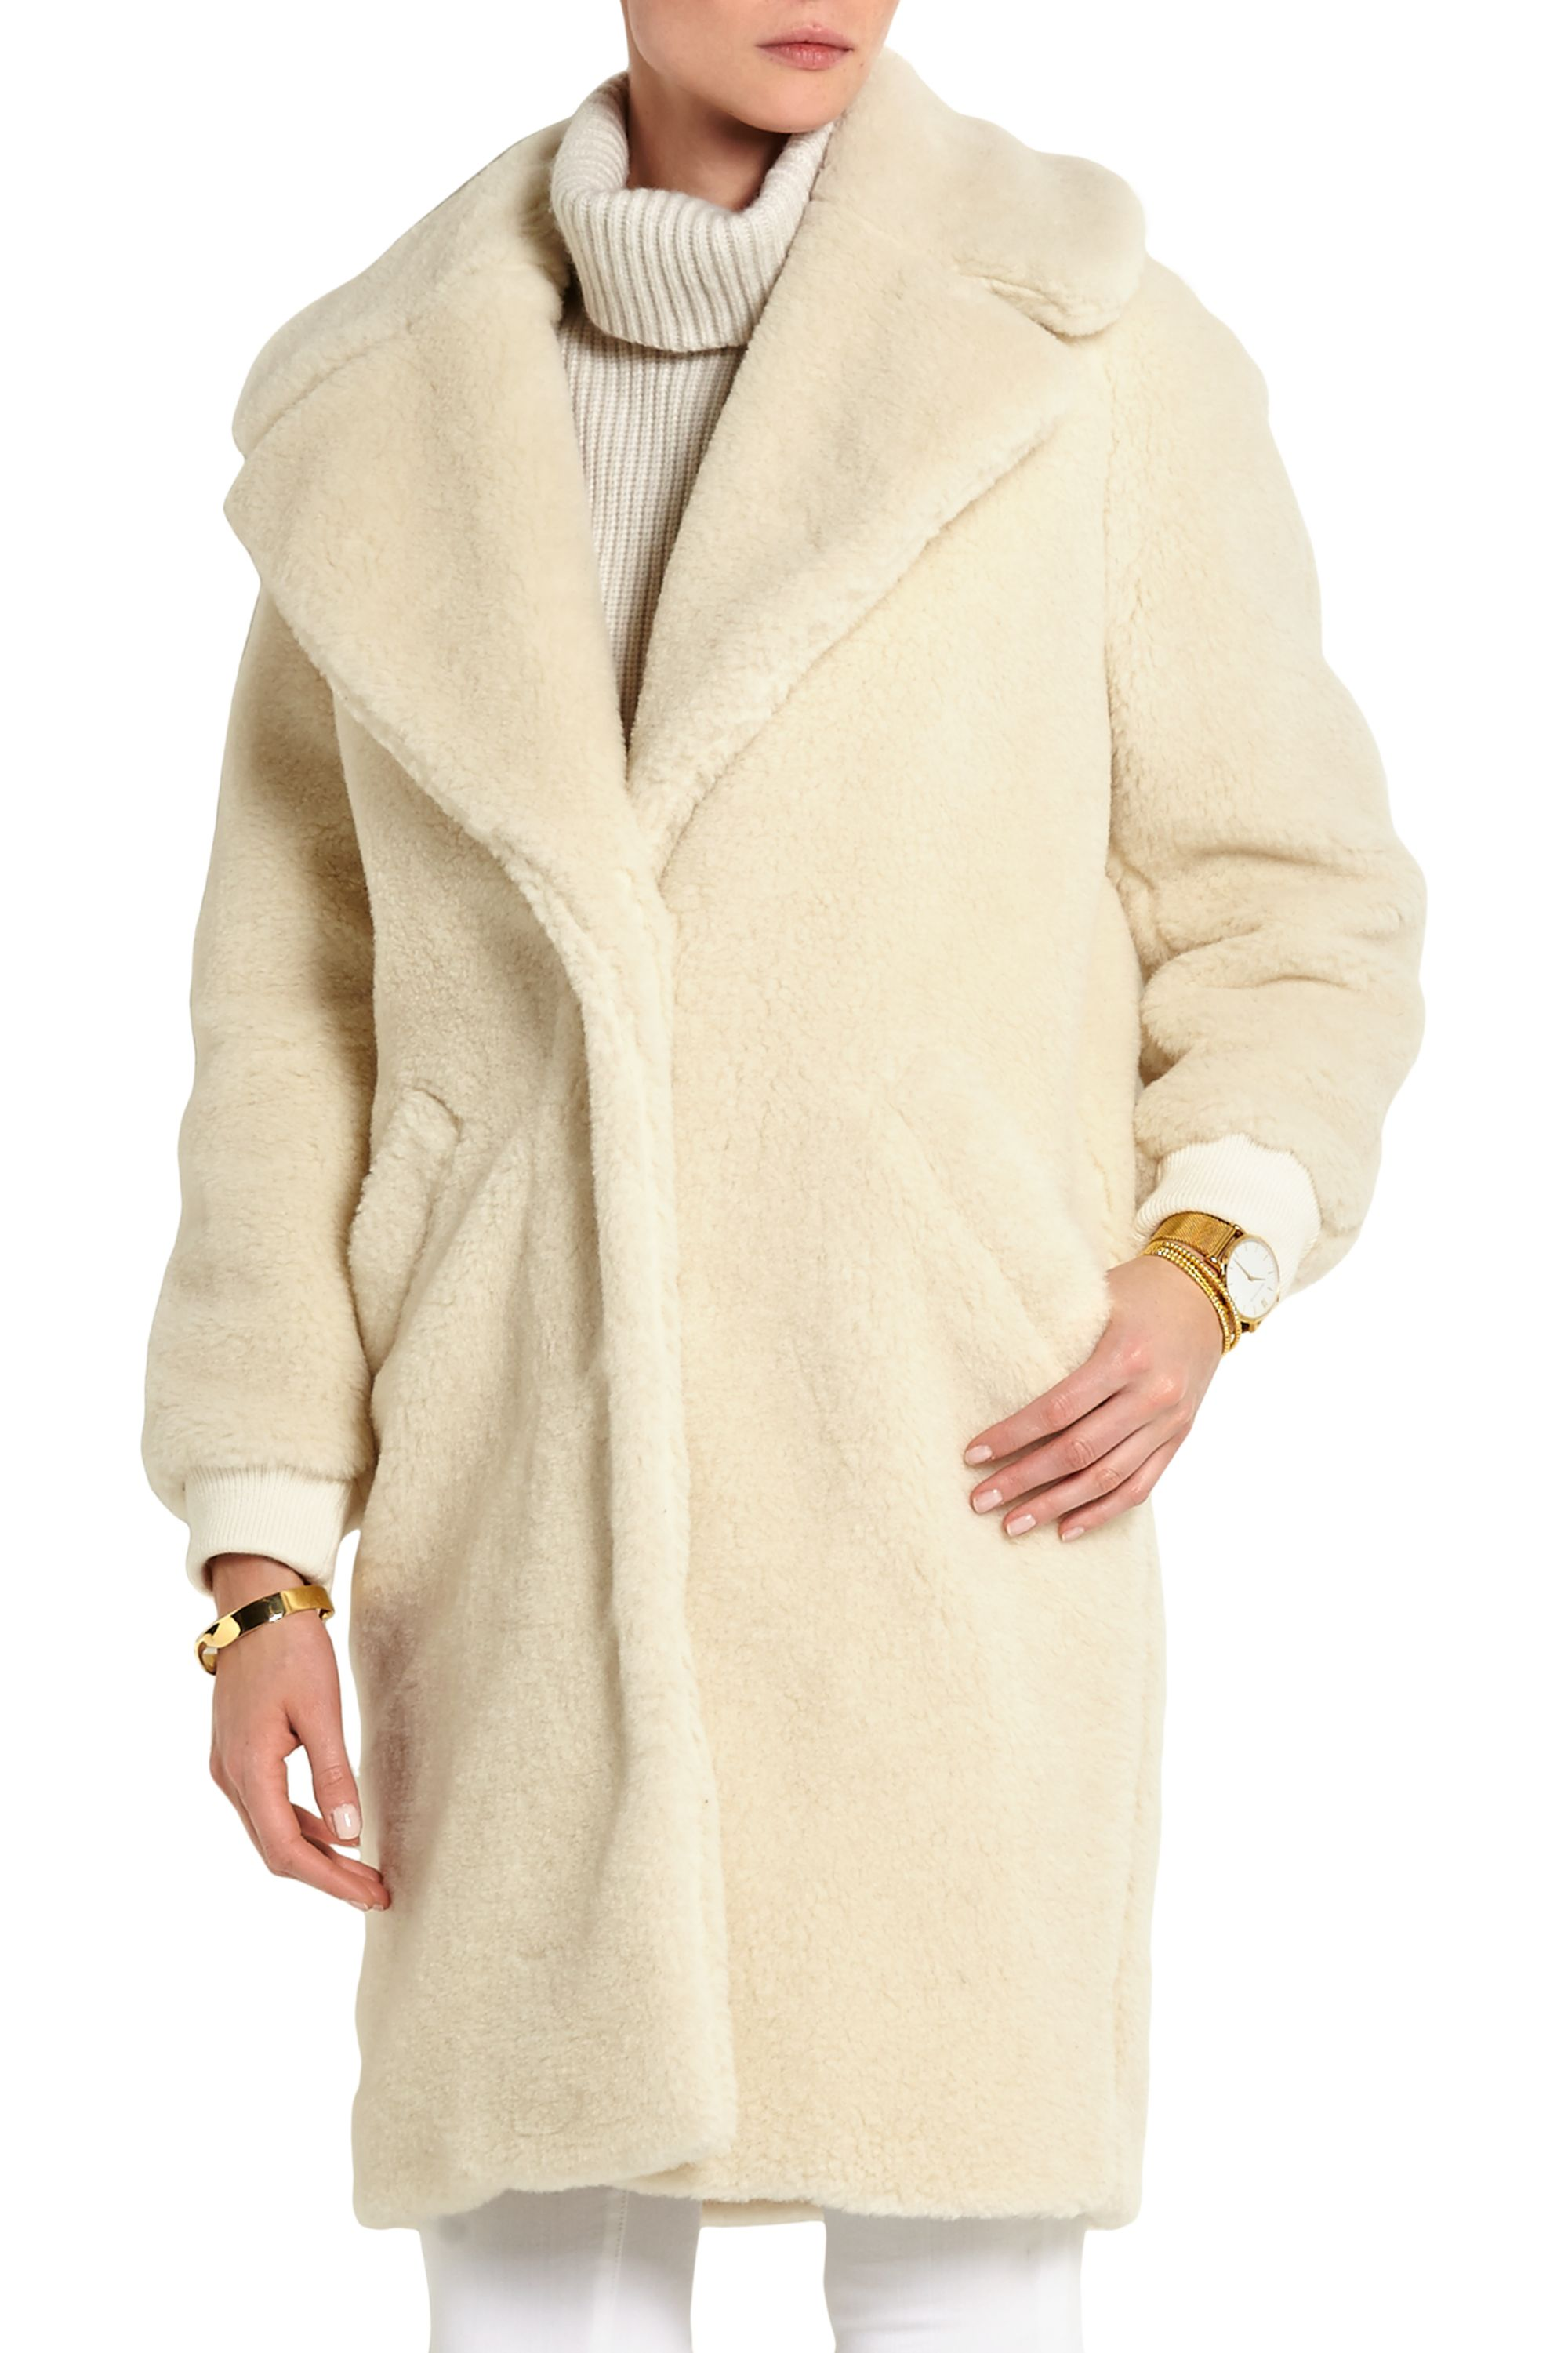 Carven Shearling-Mantel in Oversized-Passform